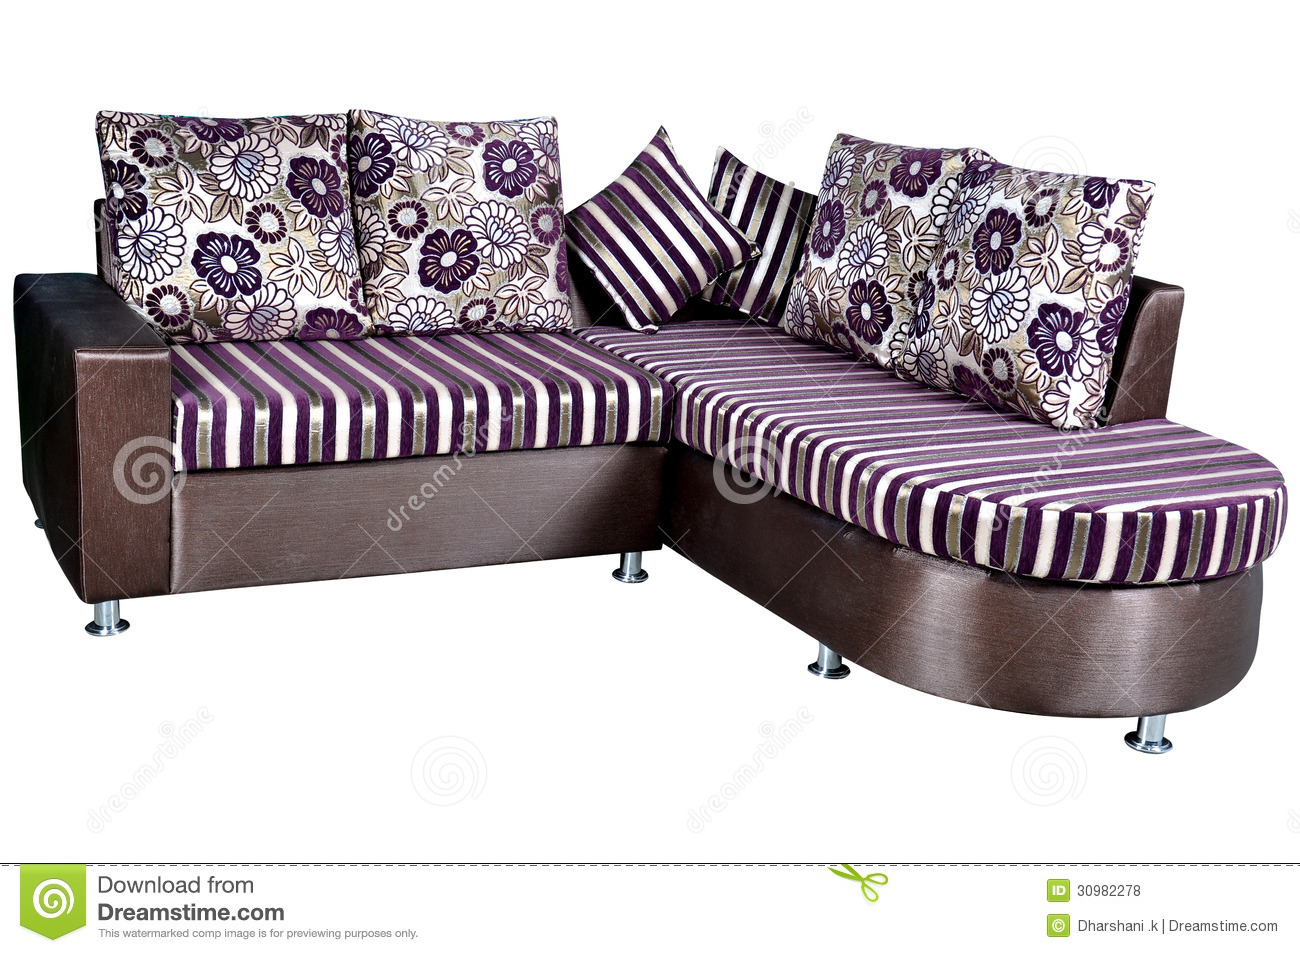 Sofa bed isolated on a white background.